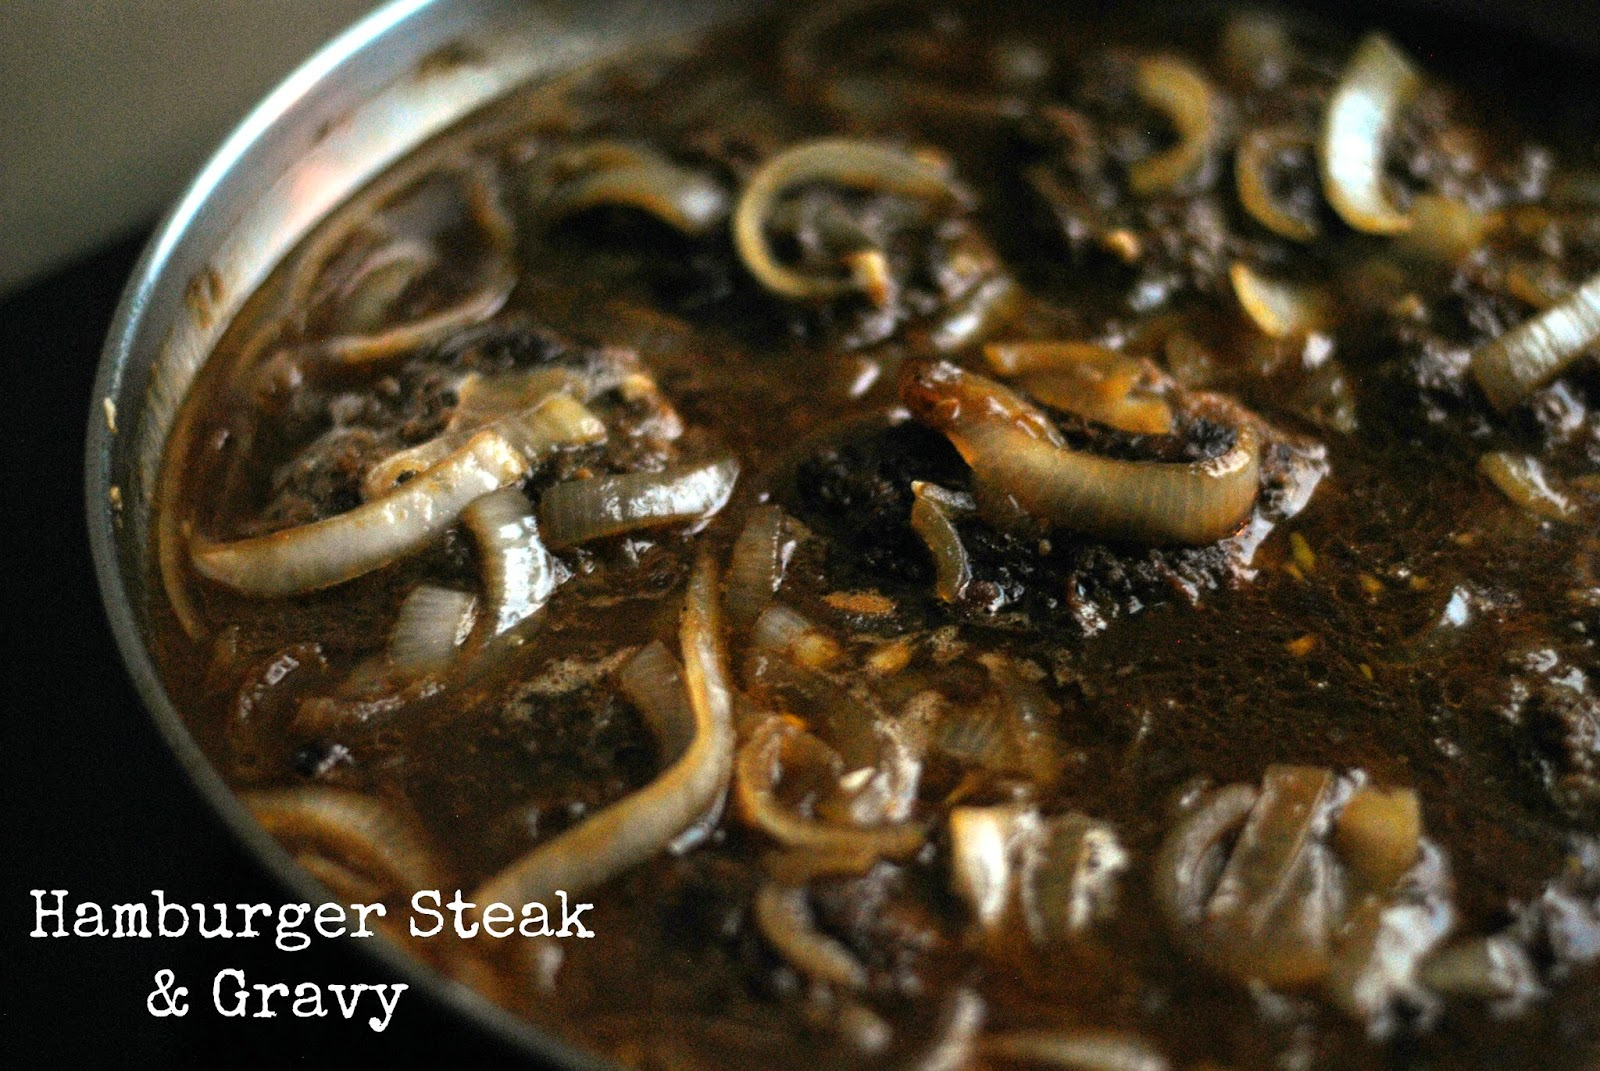 Hamburger Steak & Gravy